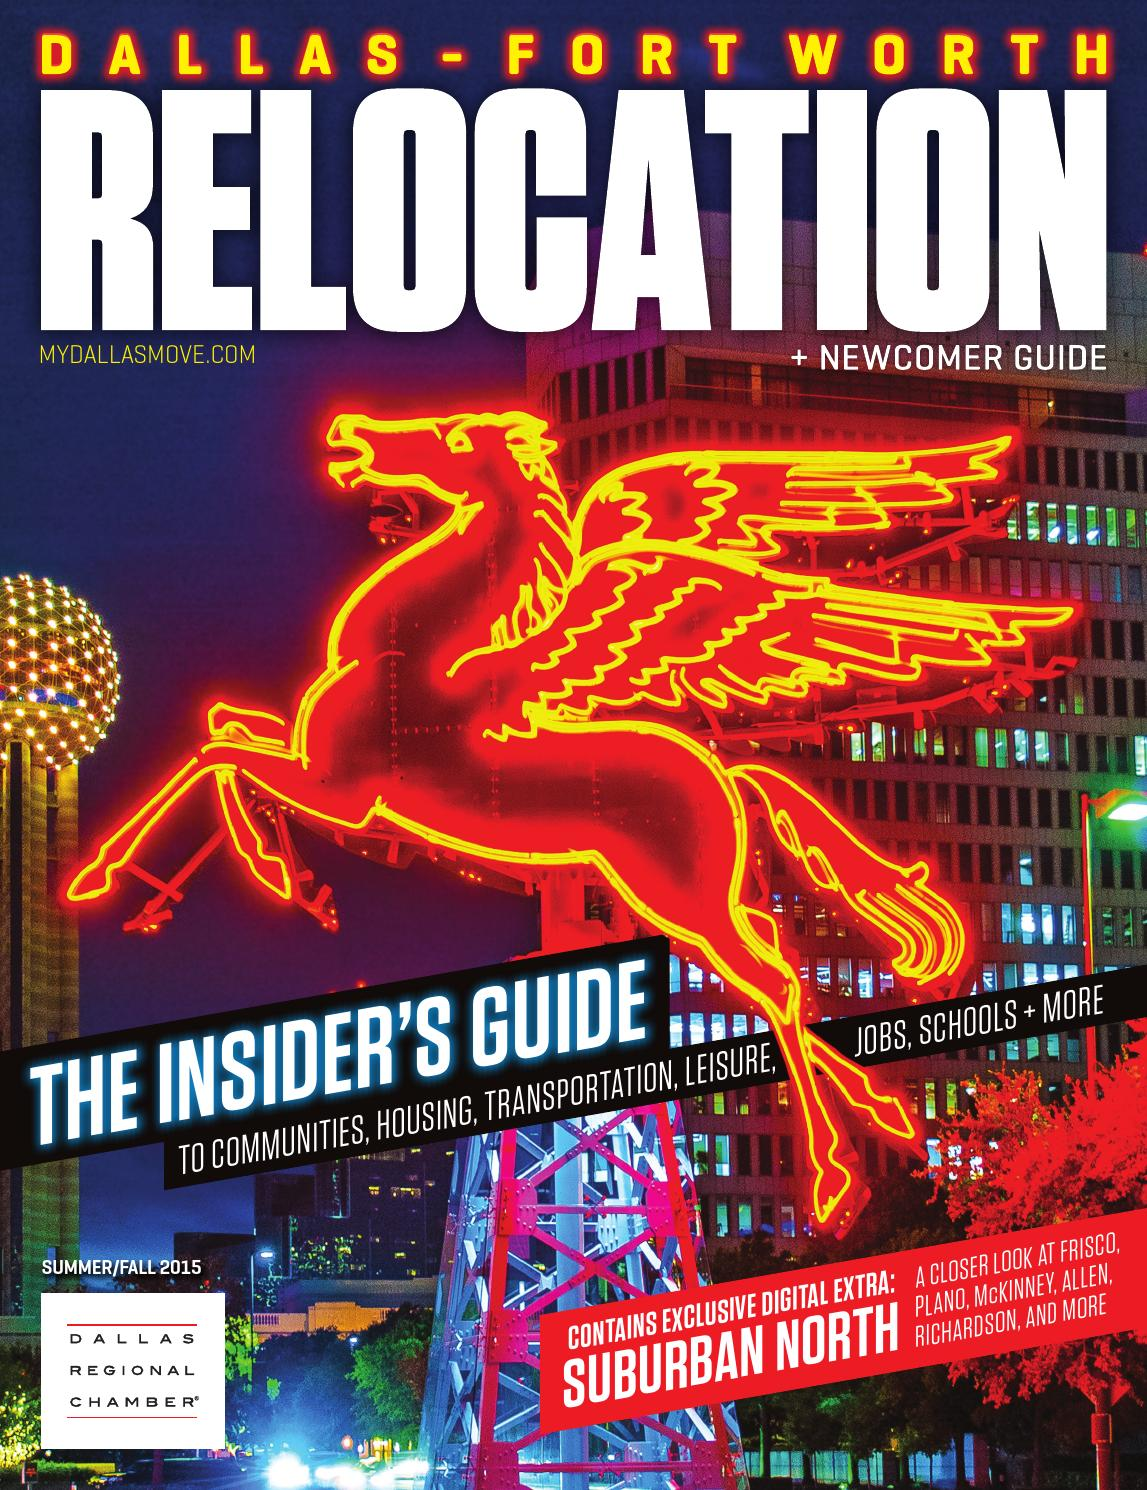 dallas fort worth relocation newcomer guide summer fall 2015 by